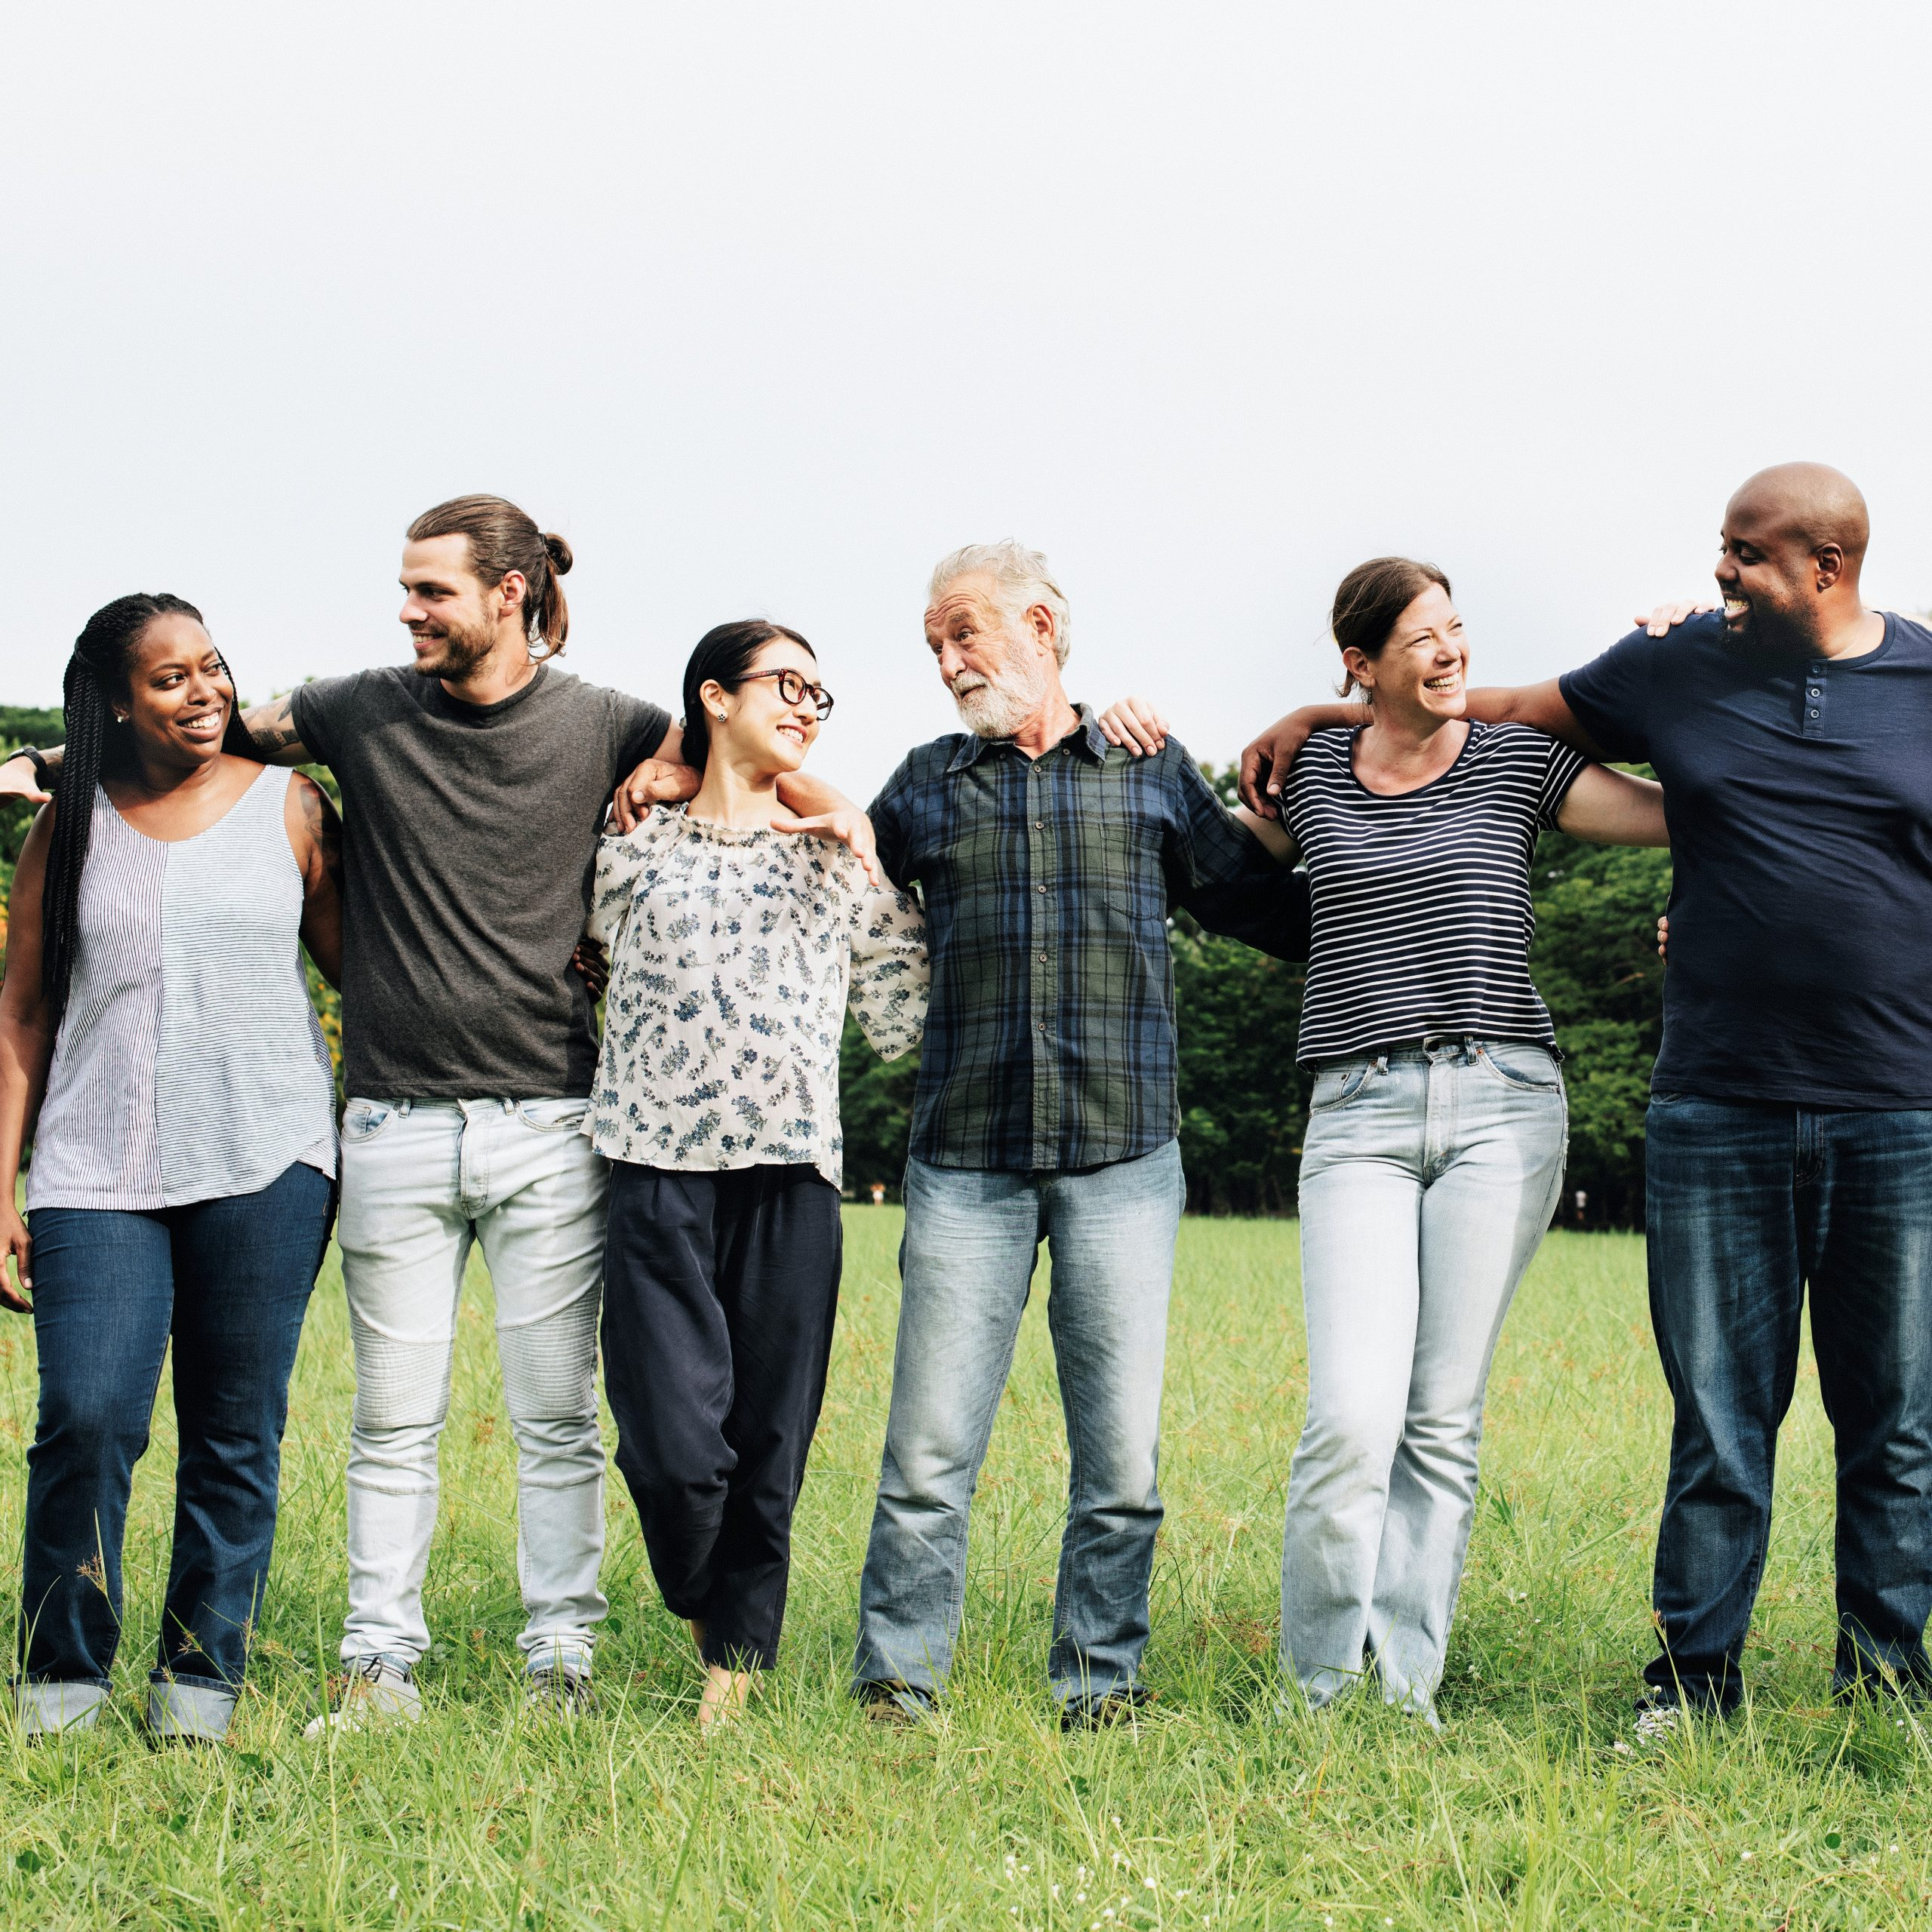 Group of people standing together with arms around each others' shoulders